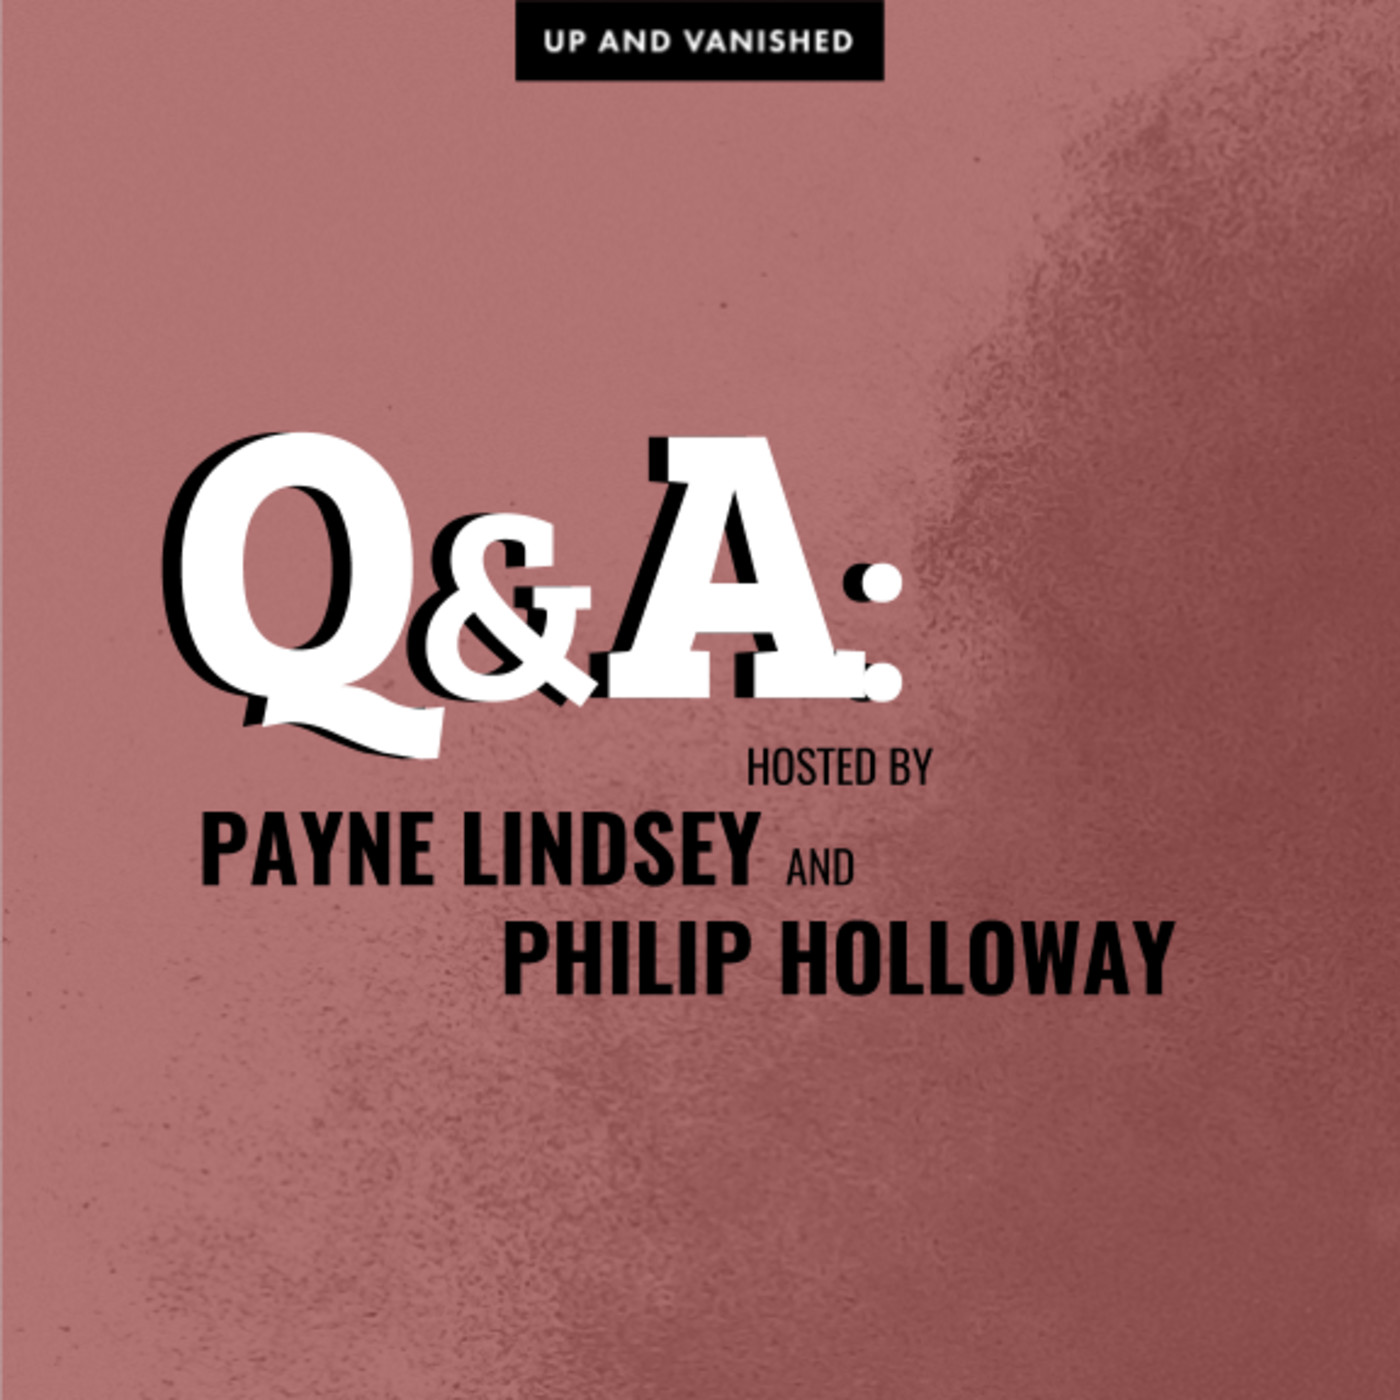 S1E : Q&A with Payne Lindsey and Philip Holloway 03.30.17